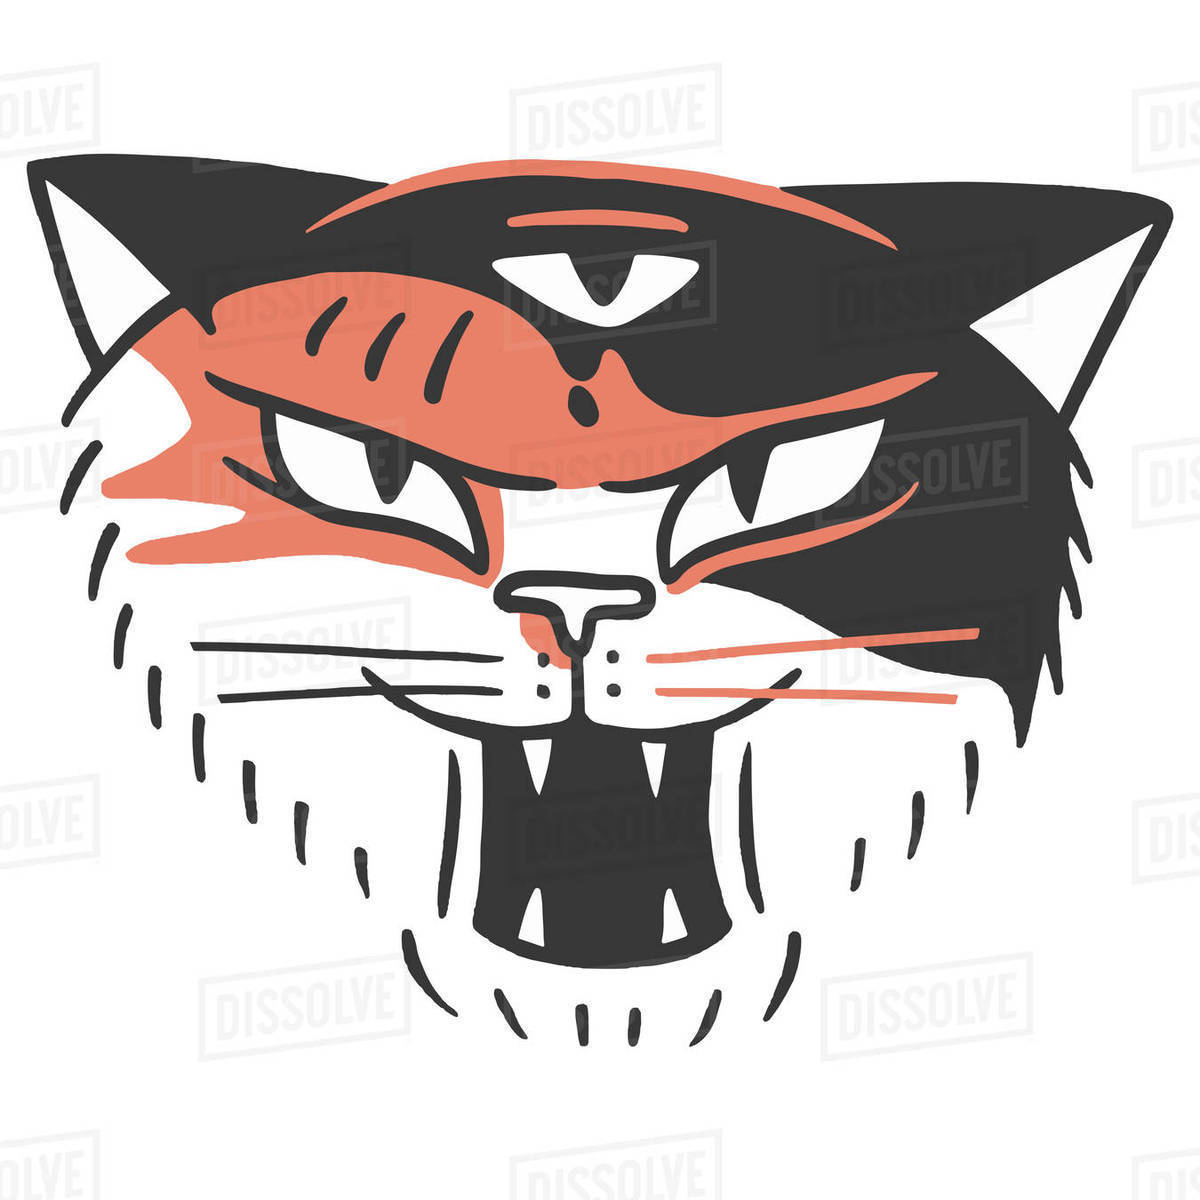 Illustration of a hissing cat face isolated on white background Royalty-free stock photo